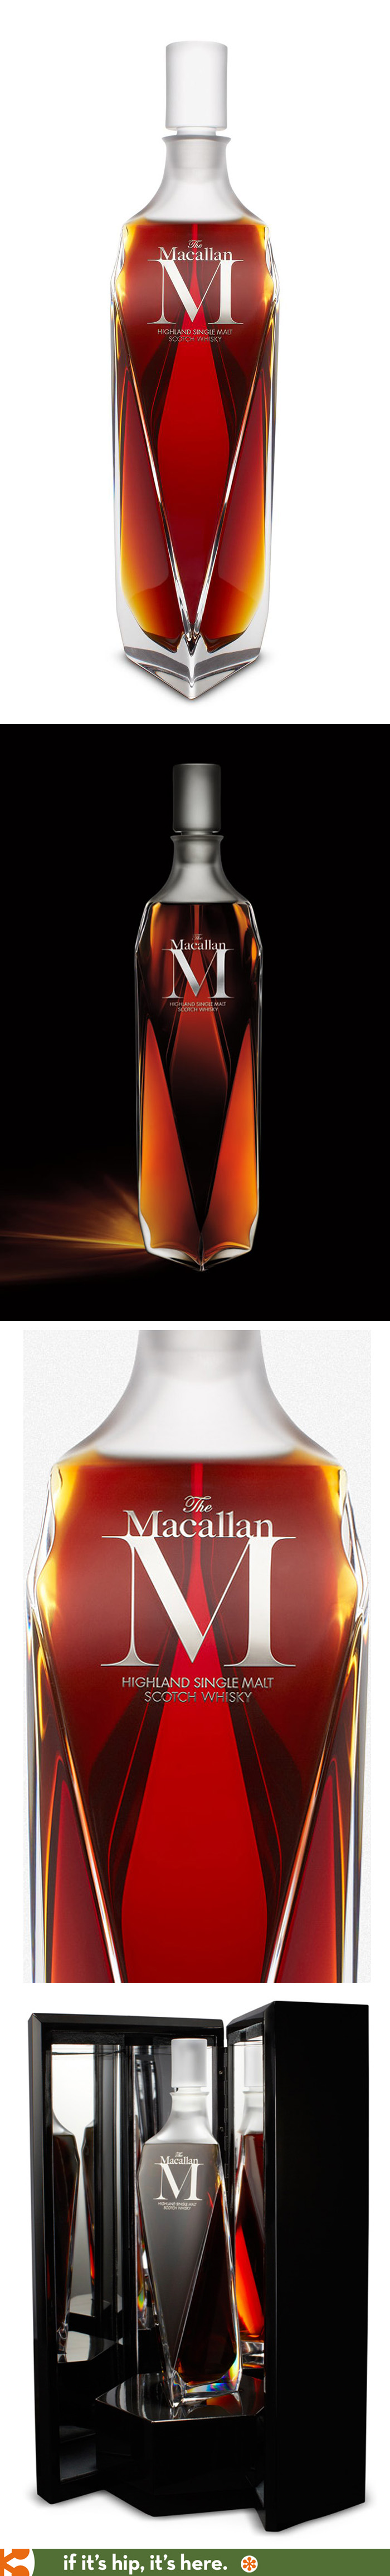 The Macallan M S Contemporary Faceted Bottle By Lalique In A Mirrored Presentation Box Whisky Bottle Alcohol Packaging Fine Wine And Spirits